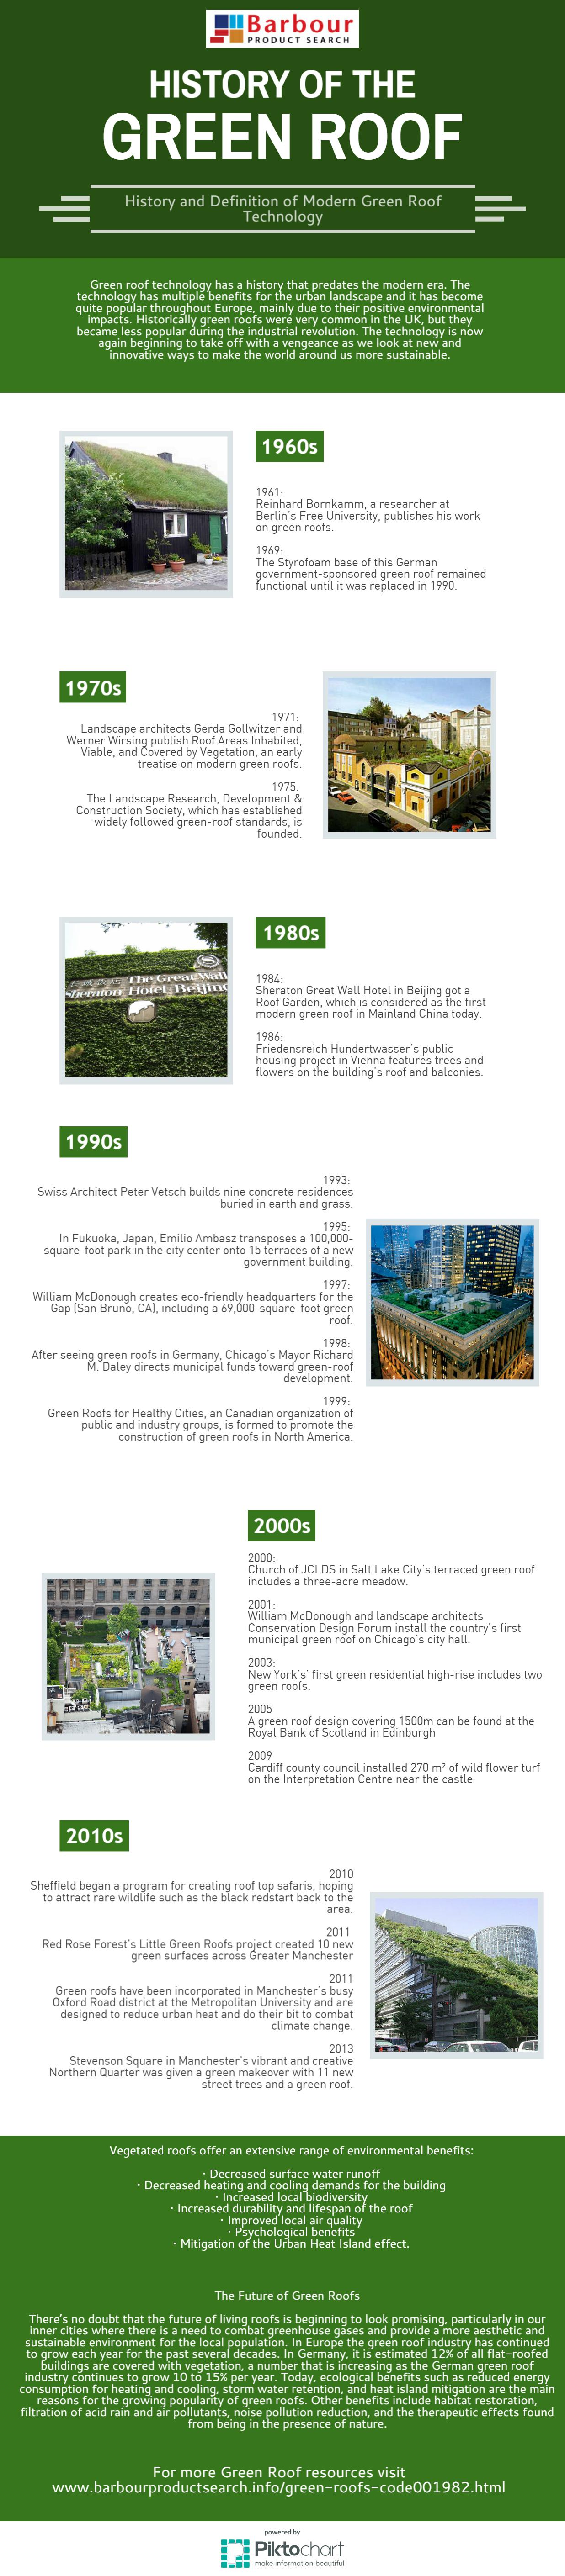 Green Roofs Timeline